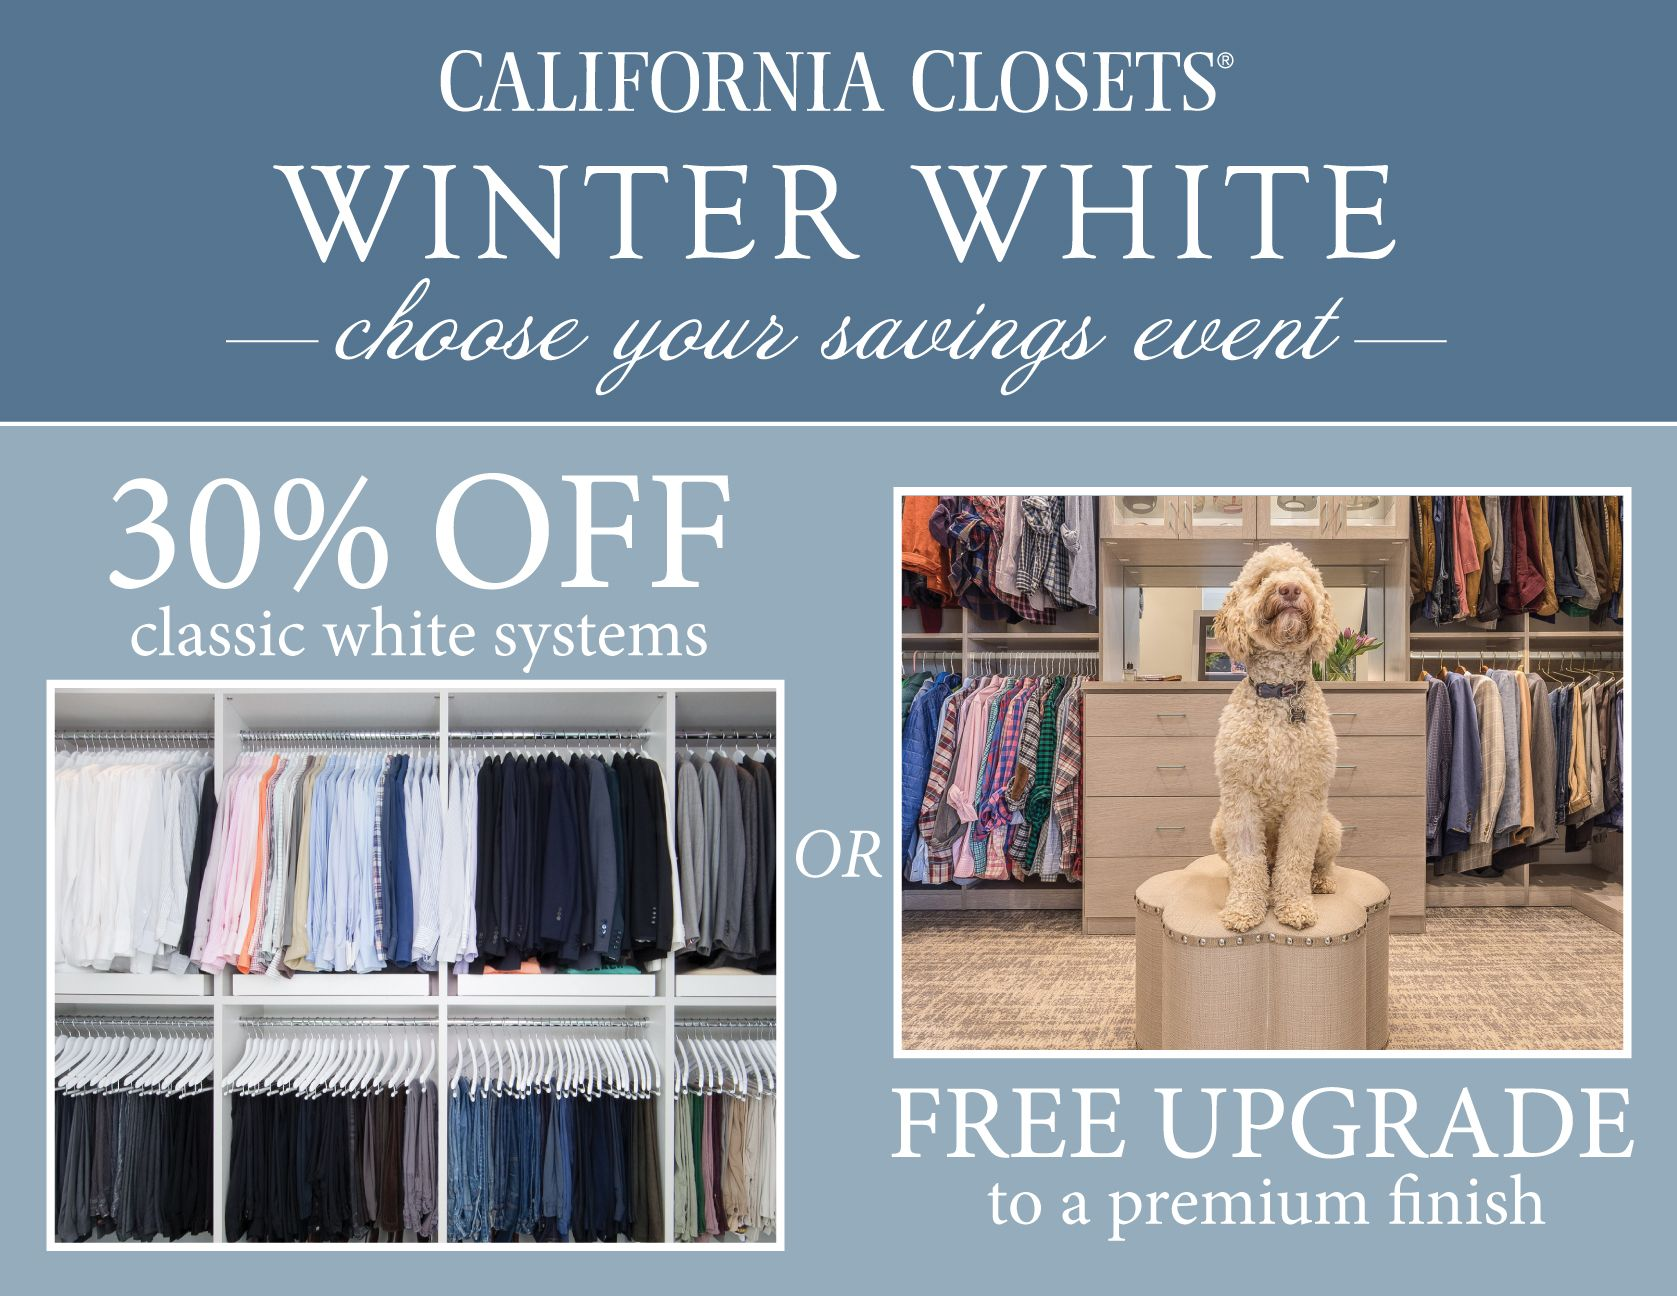 Charmant Complimentary In Home Consultations. Offered By California Closets Of  Minnesota. 952 844 0004 Or Southdale@calclosets.com. Youu0027re Invited To Our  Design ...